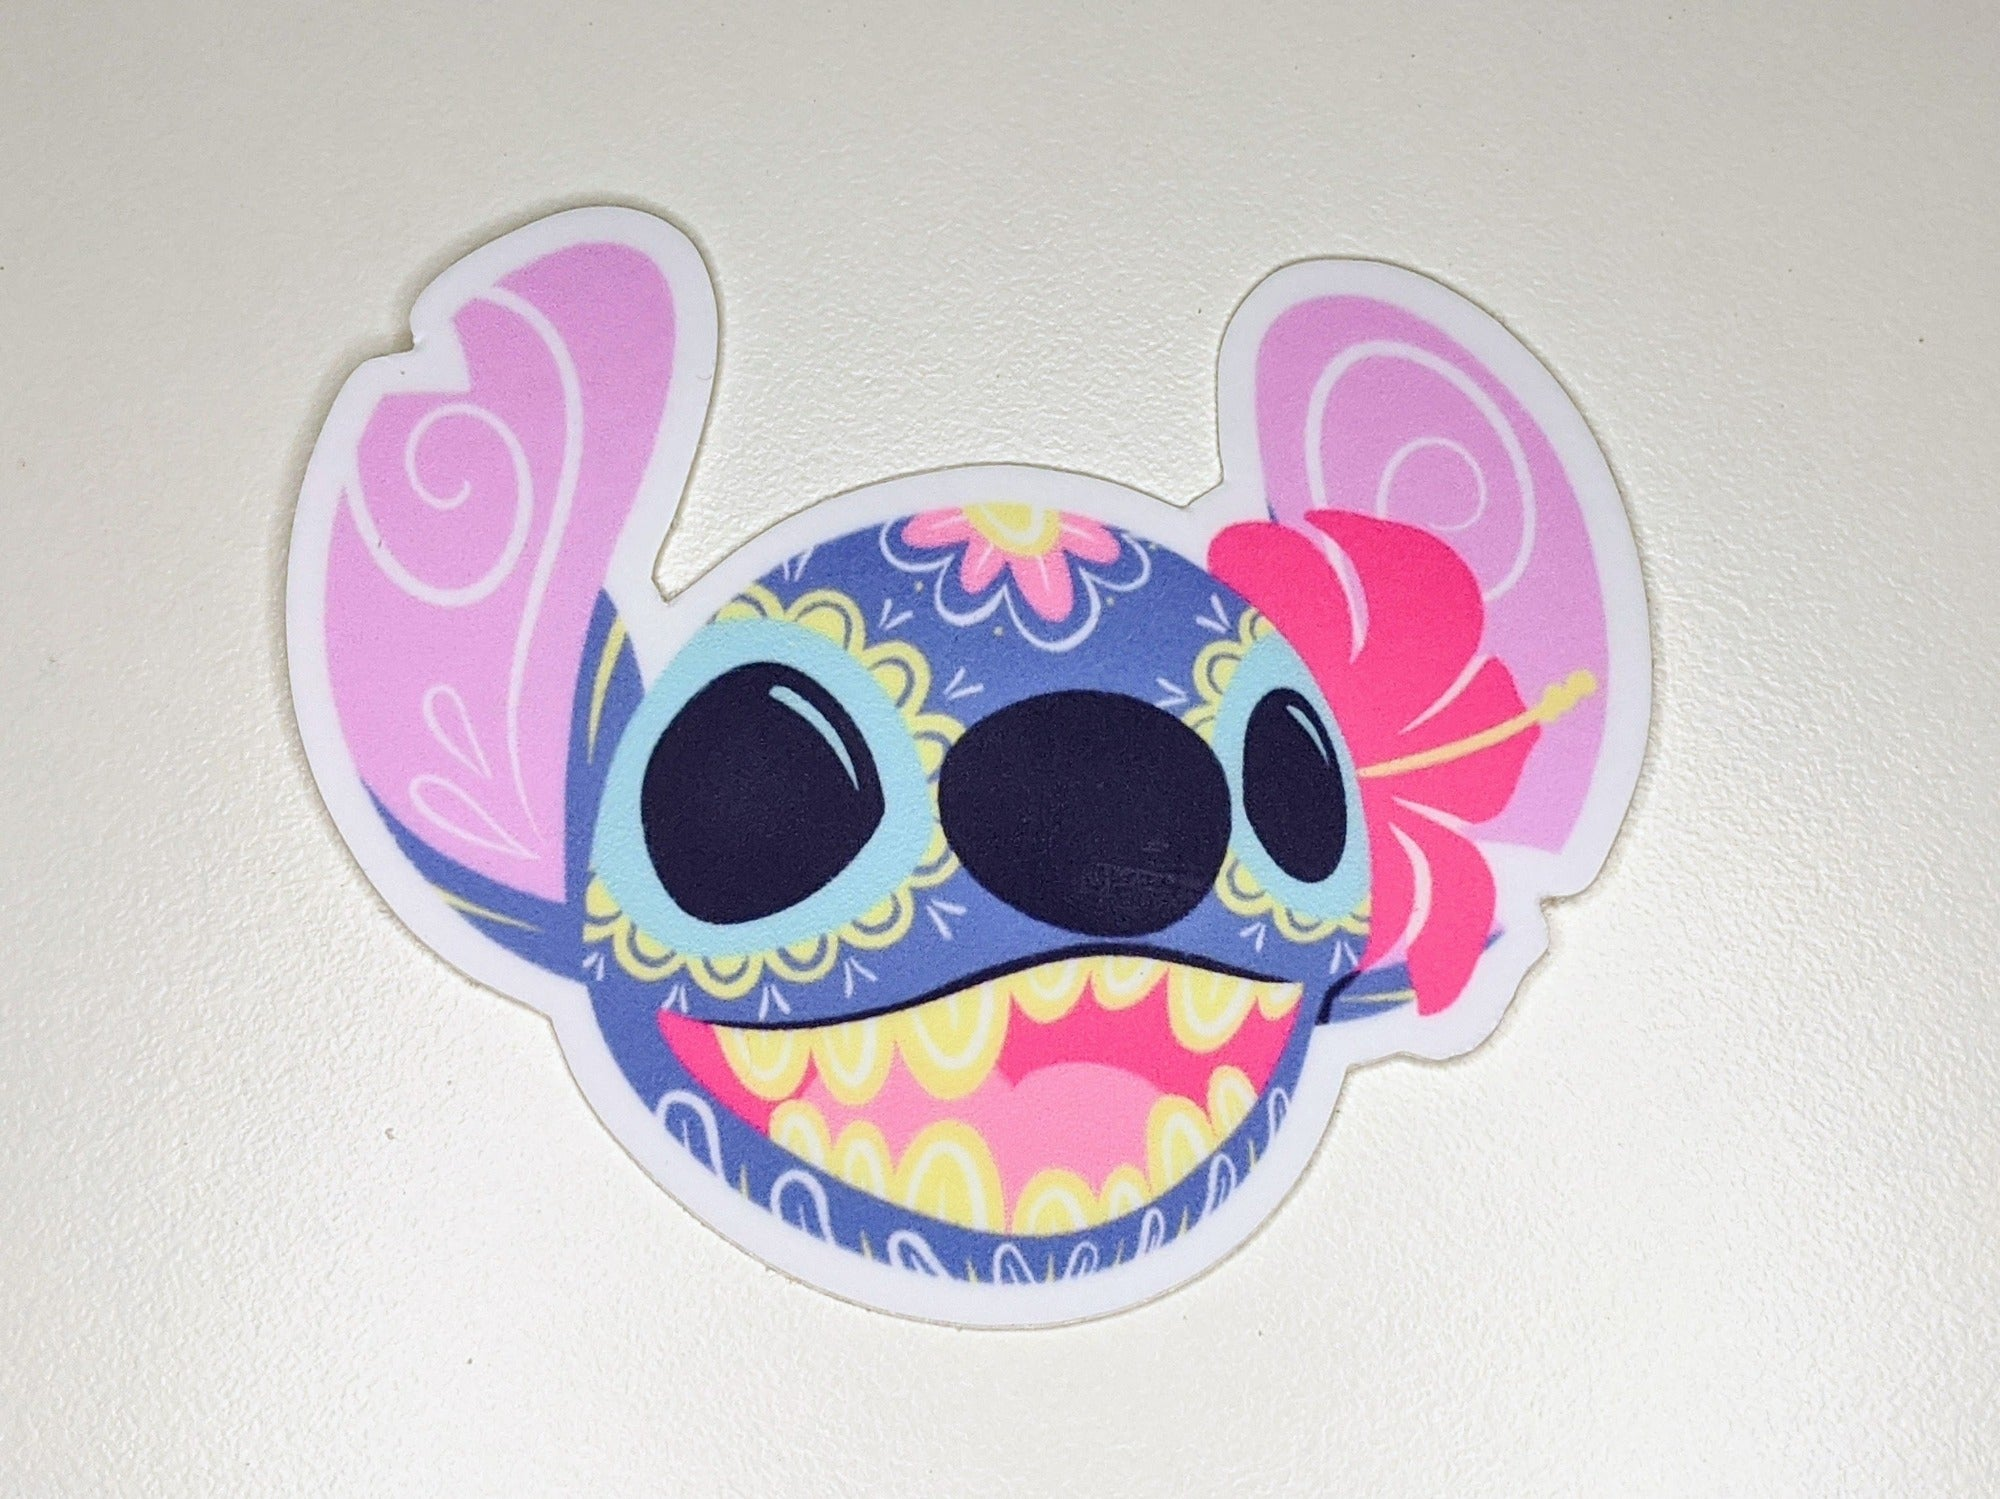 stich sugar skull vinyl sticker on white background